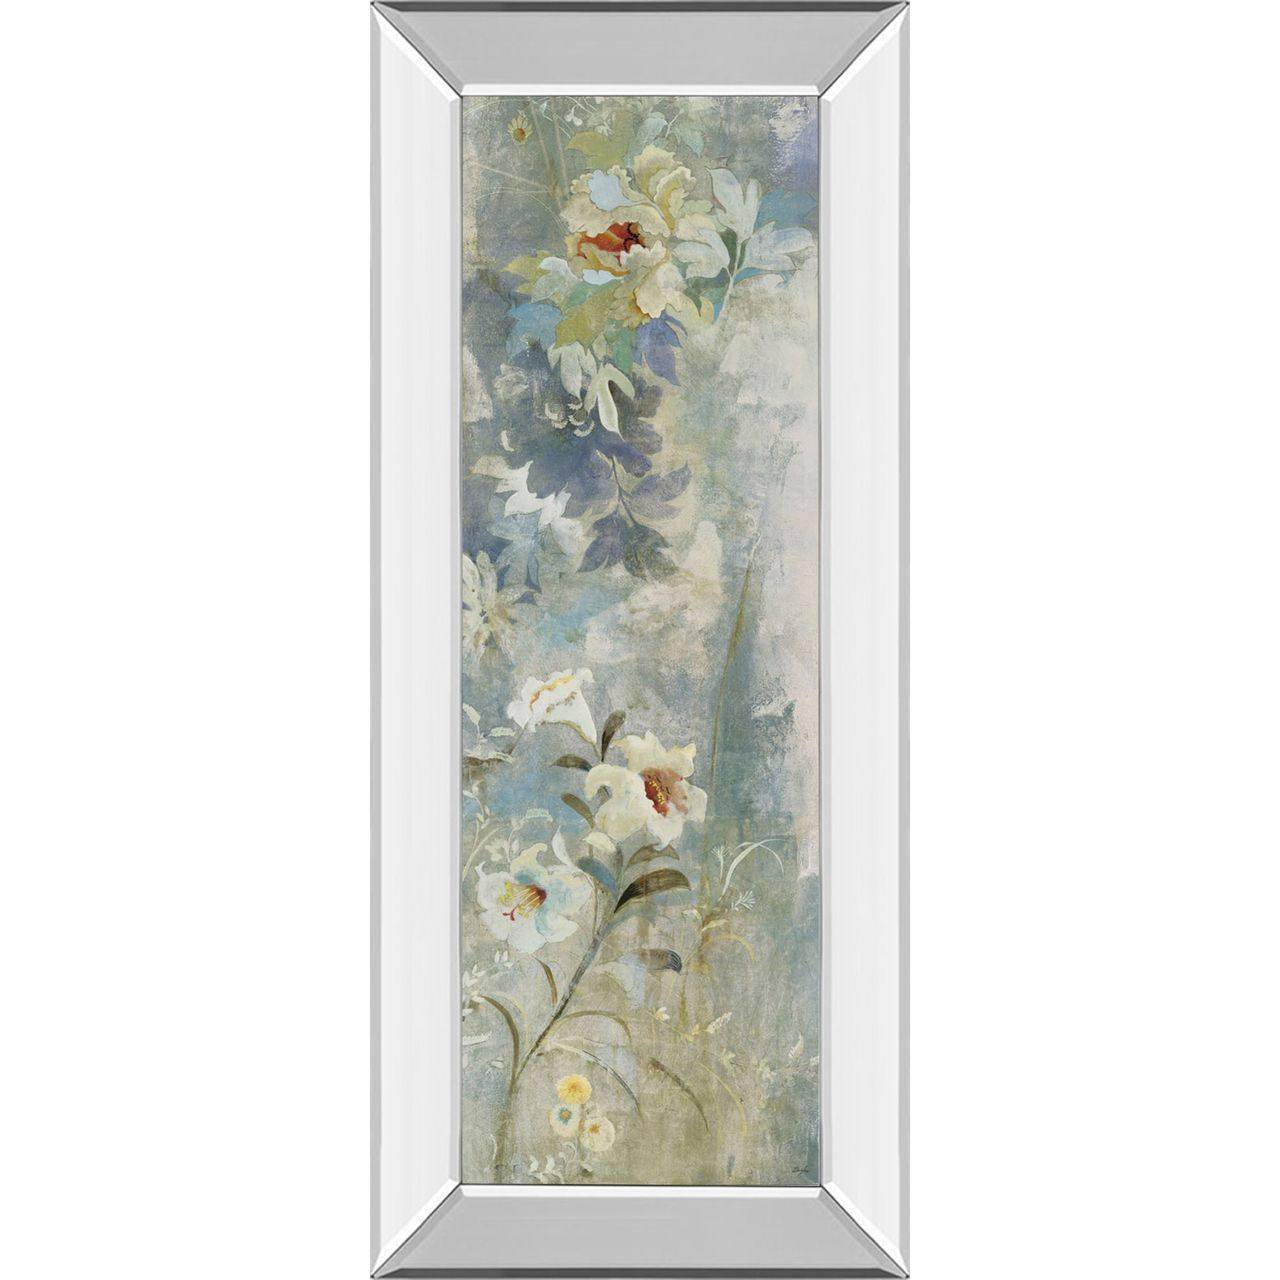 Adorn your walls with this amazing wall decoration that will surely stand-out in any living space. This gorgeous decoration is elegantly framed for your living room or family room. Each piece is meticulously crafted for long-lasting durability and beauty. Features: Artistic piece and wall decorationGarden Haiku Il framed wall art by Douglas Made in the USA Scratch resistant MDF Ready to hang with all the hardware pre-attachedRecommended for indoor use Dimensions: 42